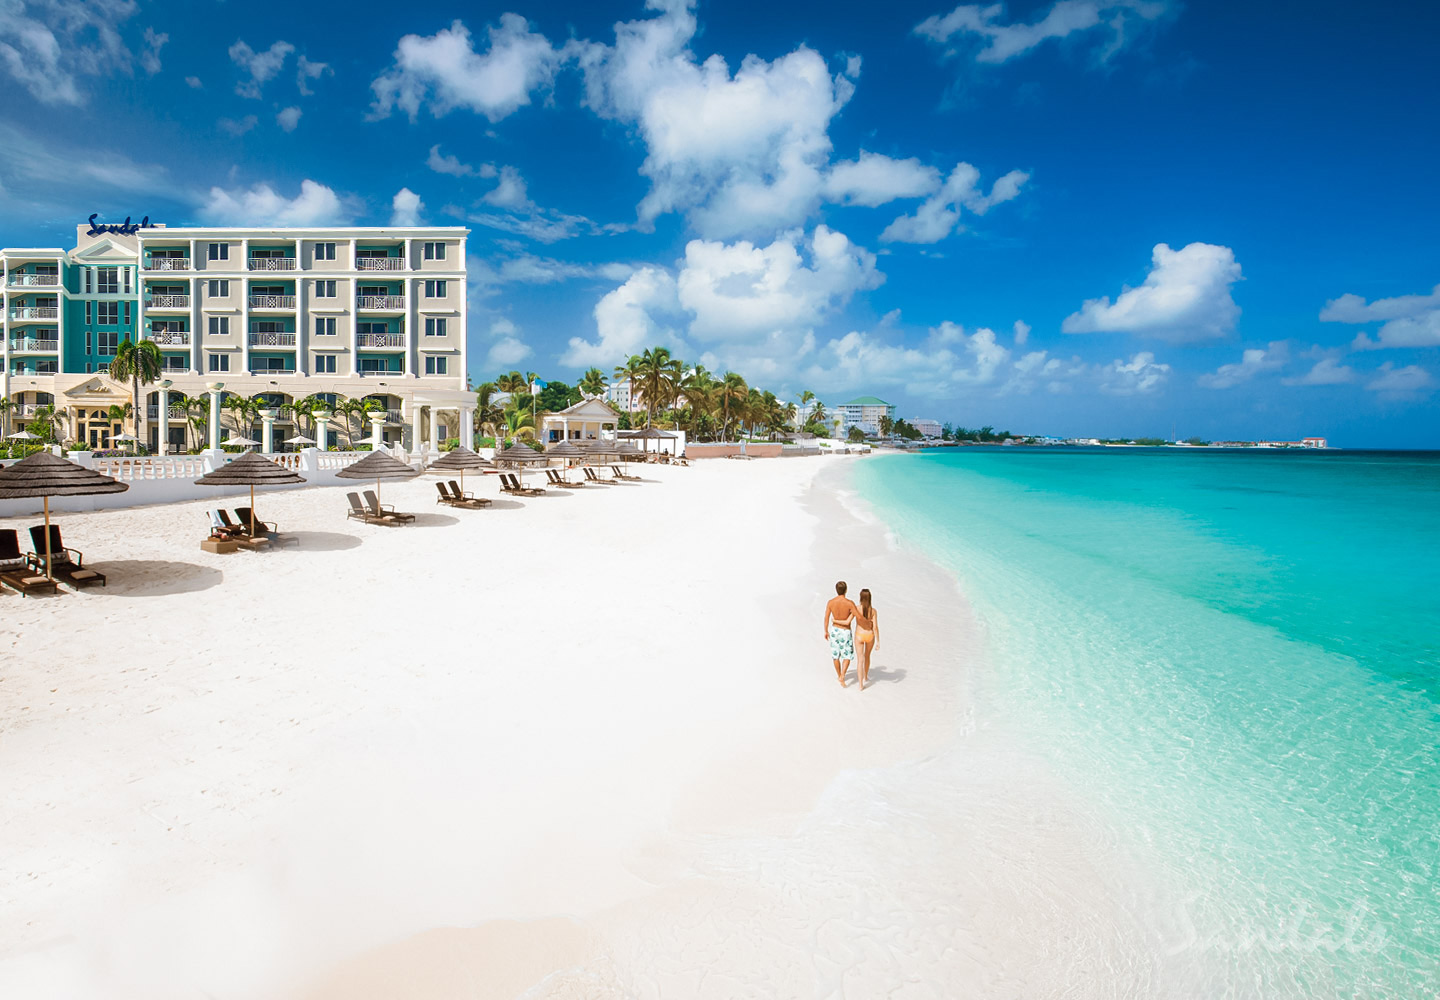 Travel Agency All-Inclusive Resort Sandals Royal Bahamian 003